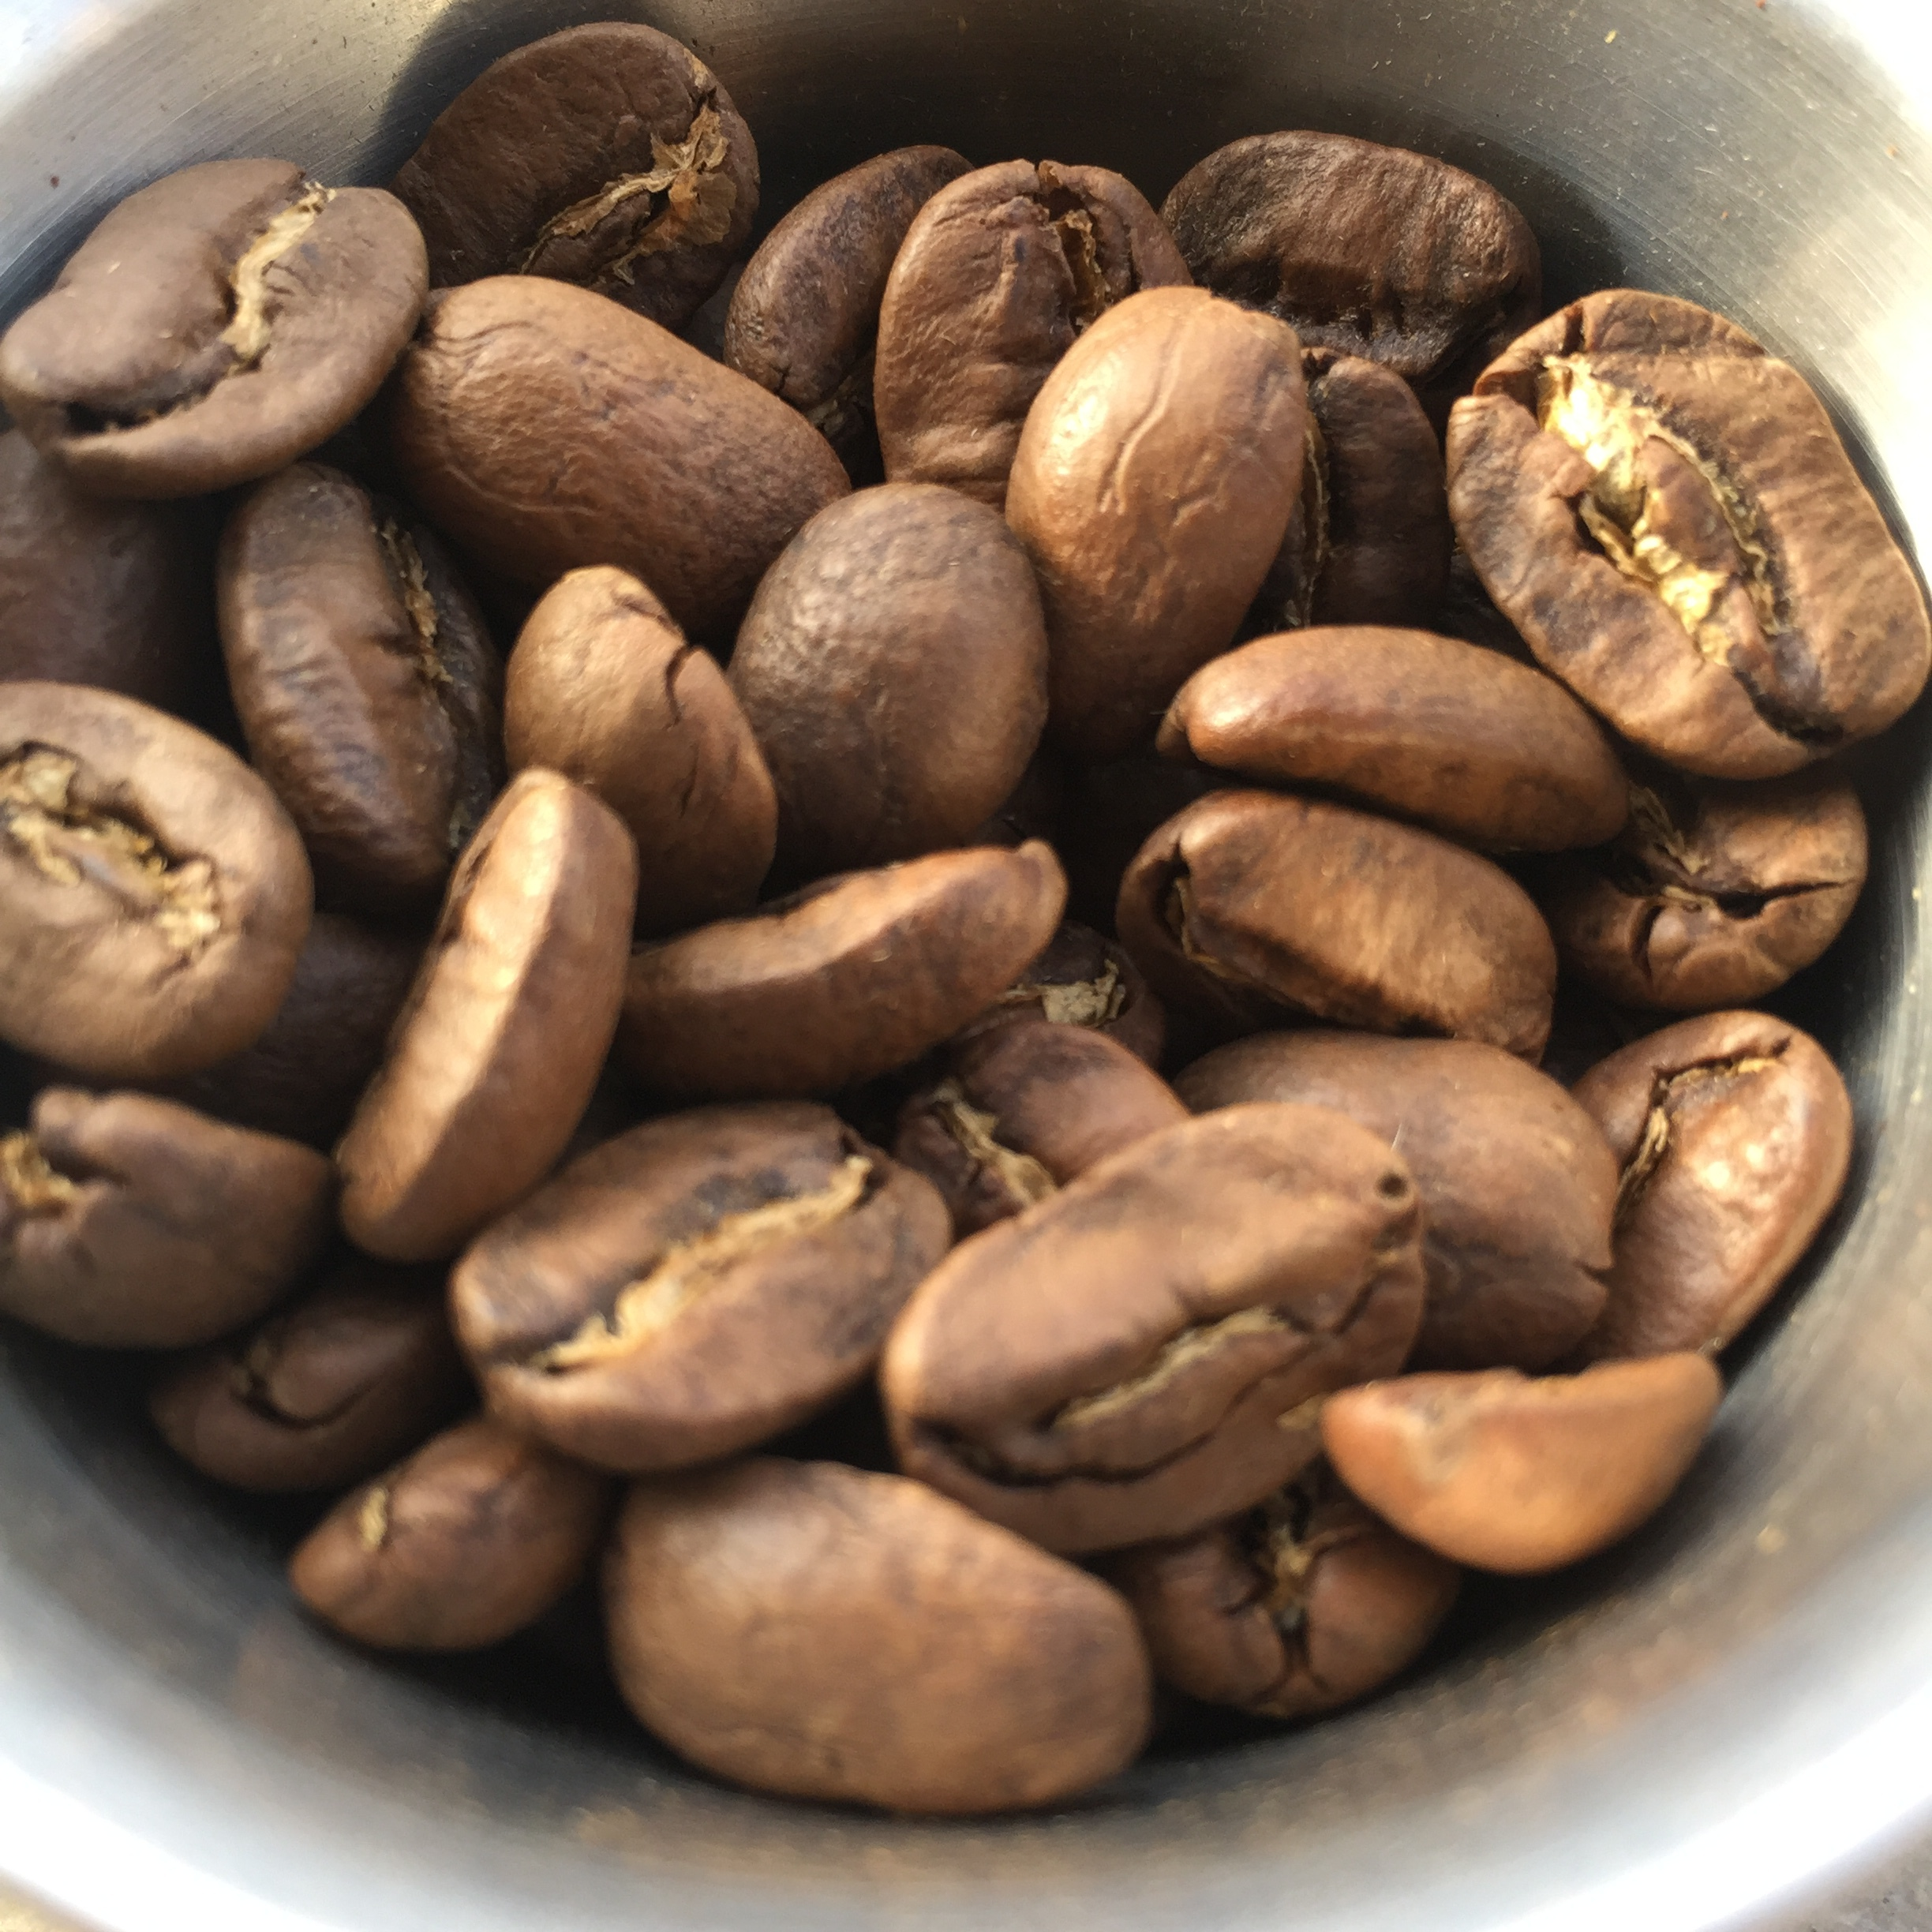 Beans are large, dense, and hard